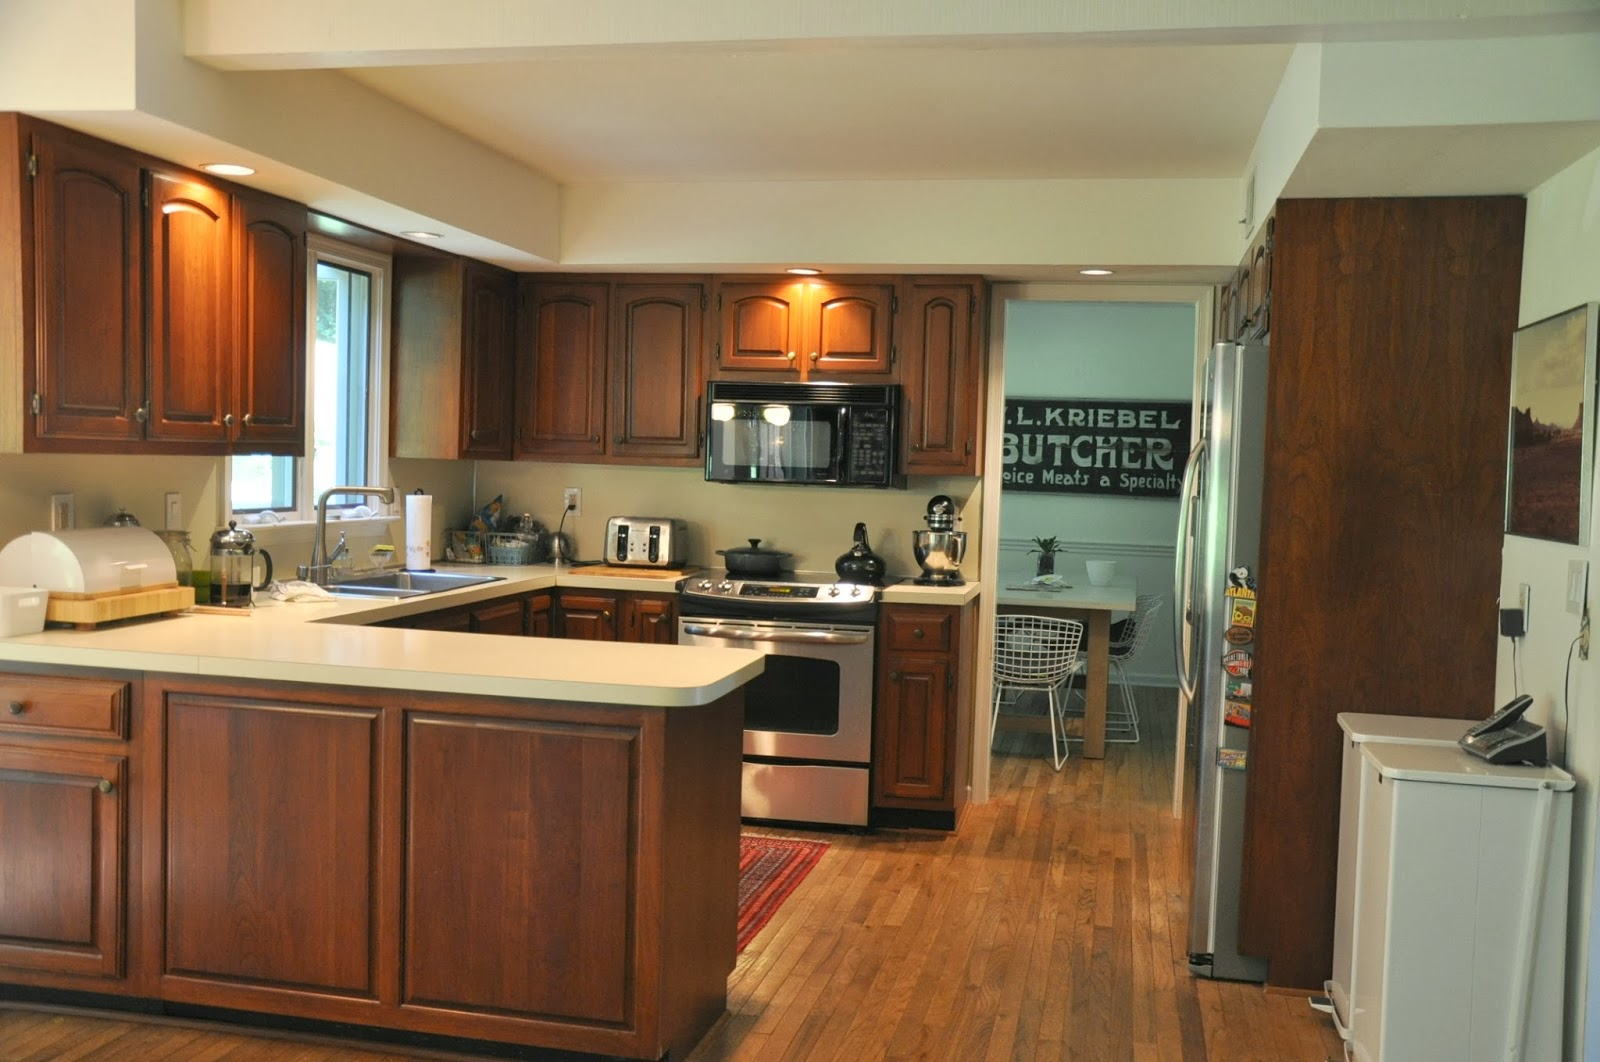 excellent-u-shaped-brown-and-creamy-kitchen-design-with-white-colored-countertop-and-brown-kitchen-cabinets-astonishing-kitchen-design-ideas-with-chic-brown-color